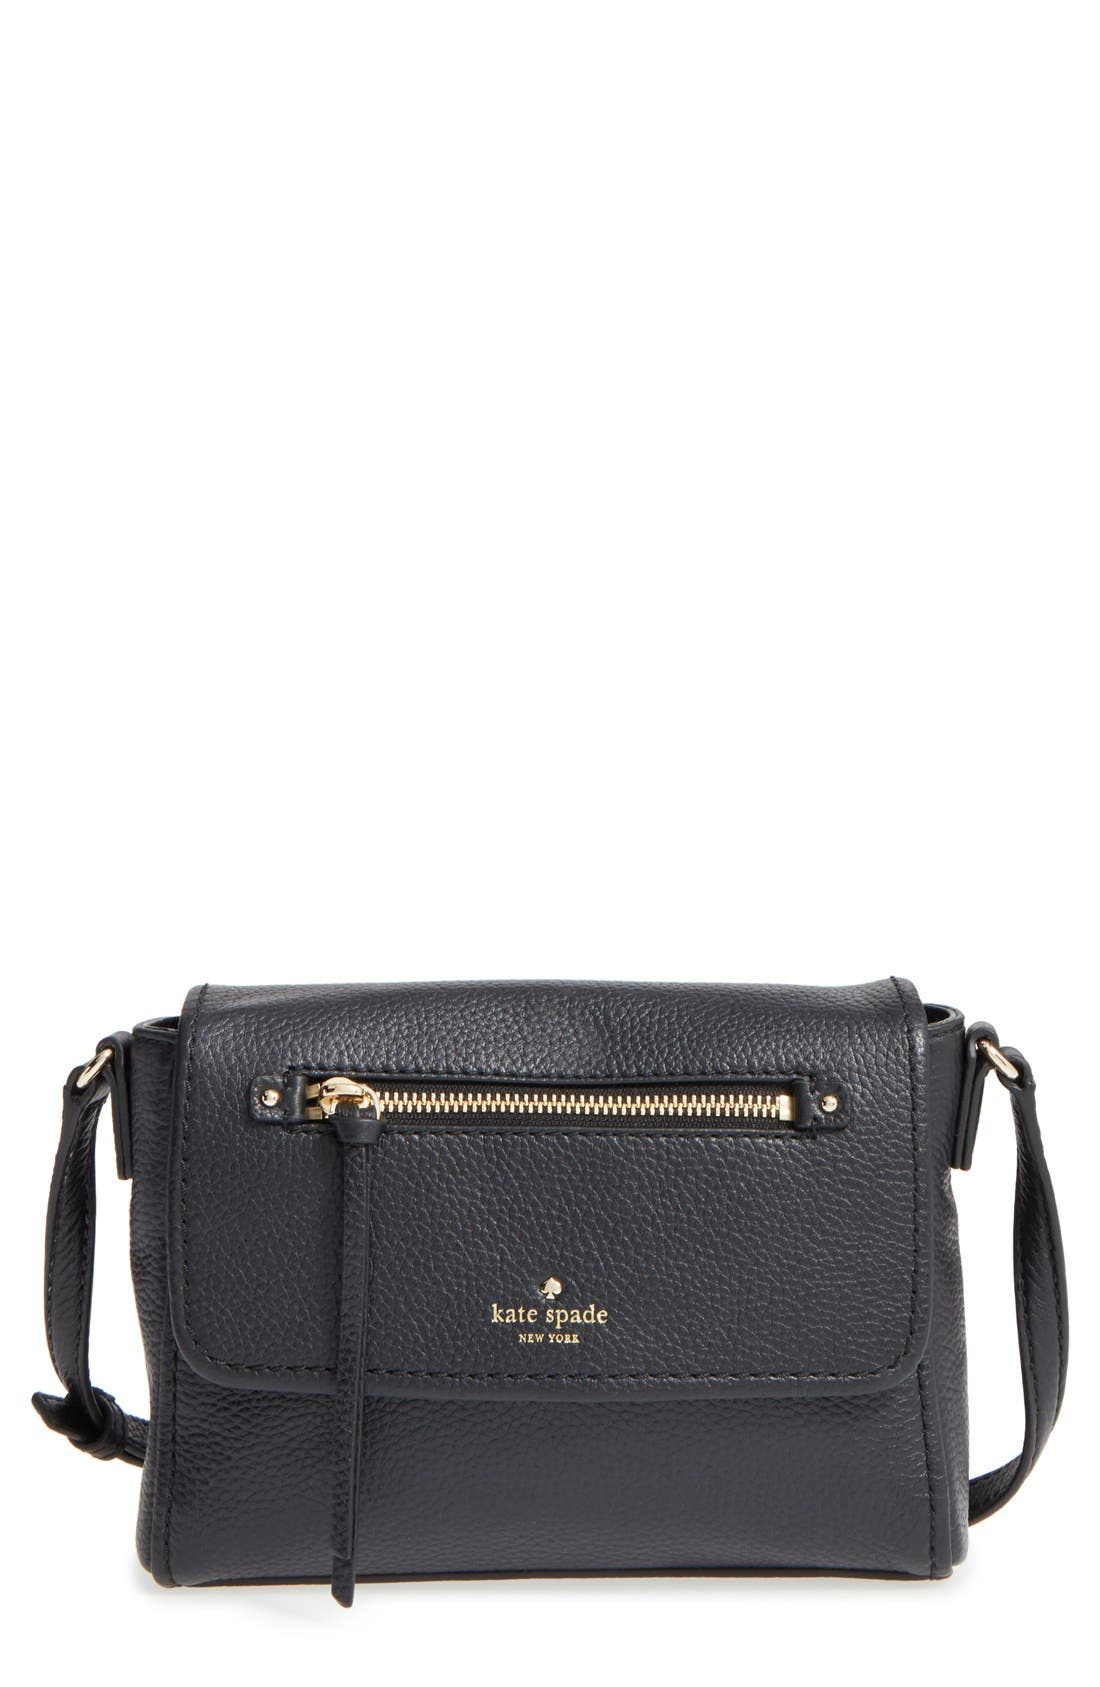 Alternate Image 1 Selected - kate spade new york 'cobble hill - mini toddy' leather crossbody bag